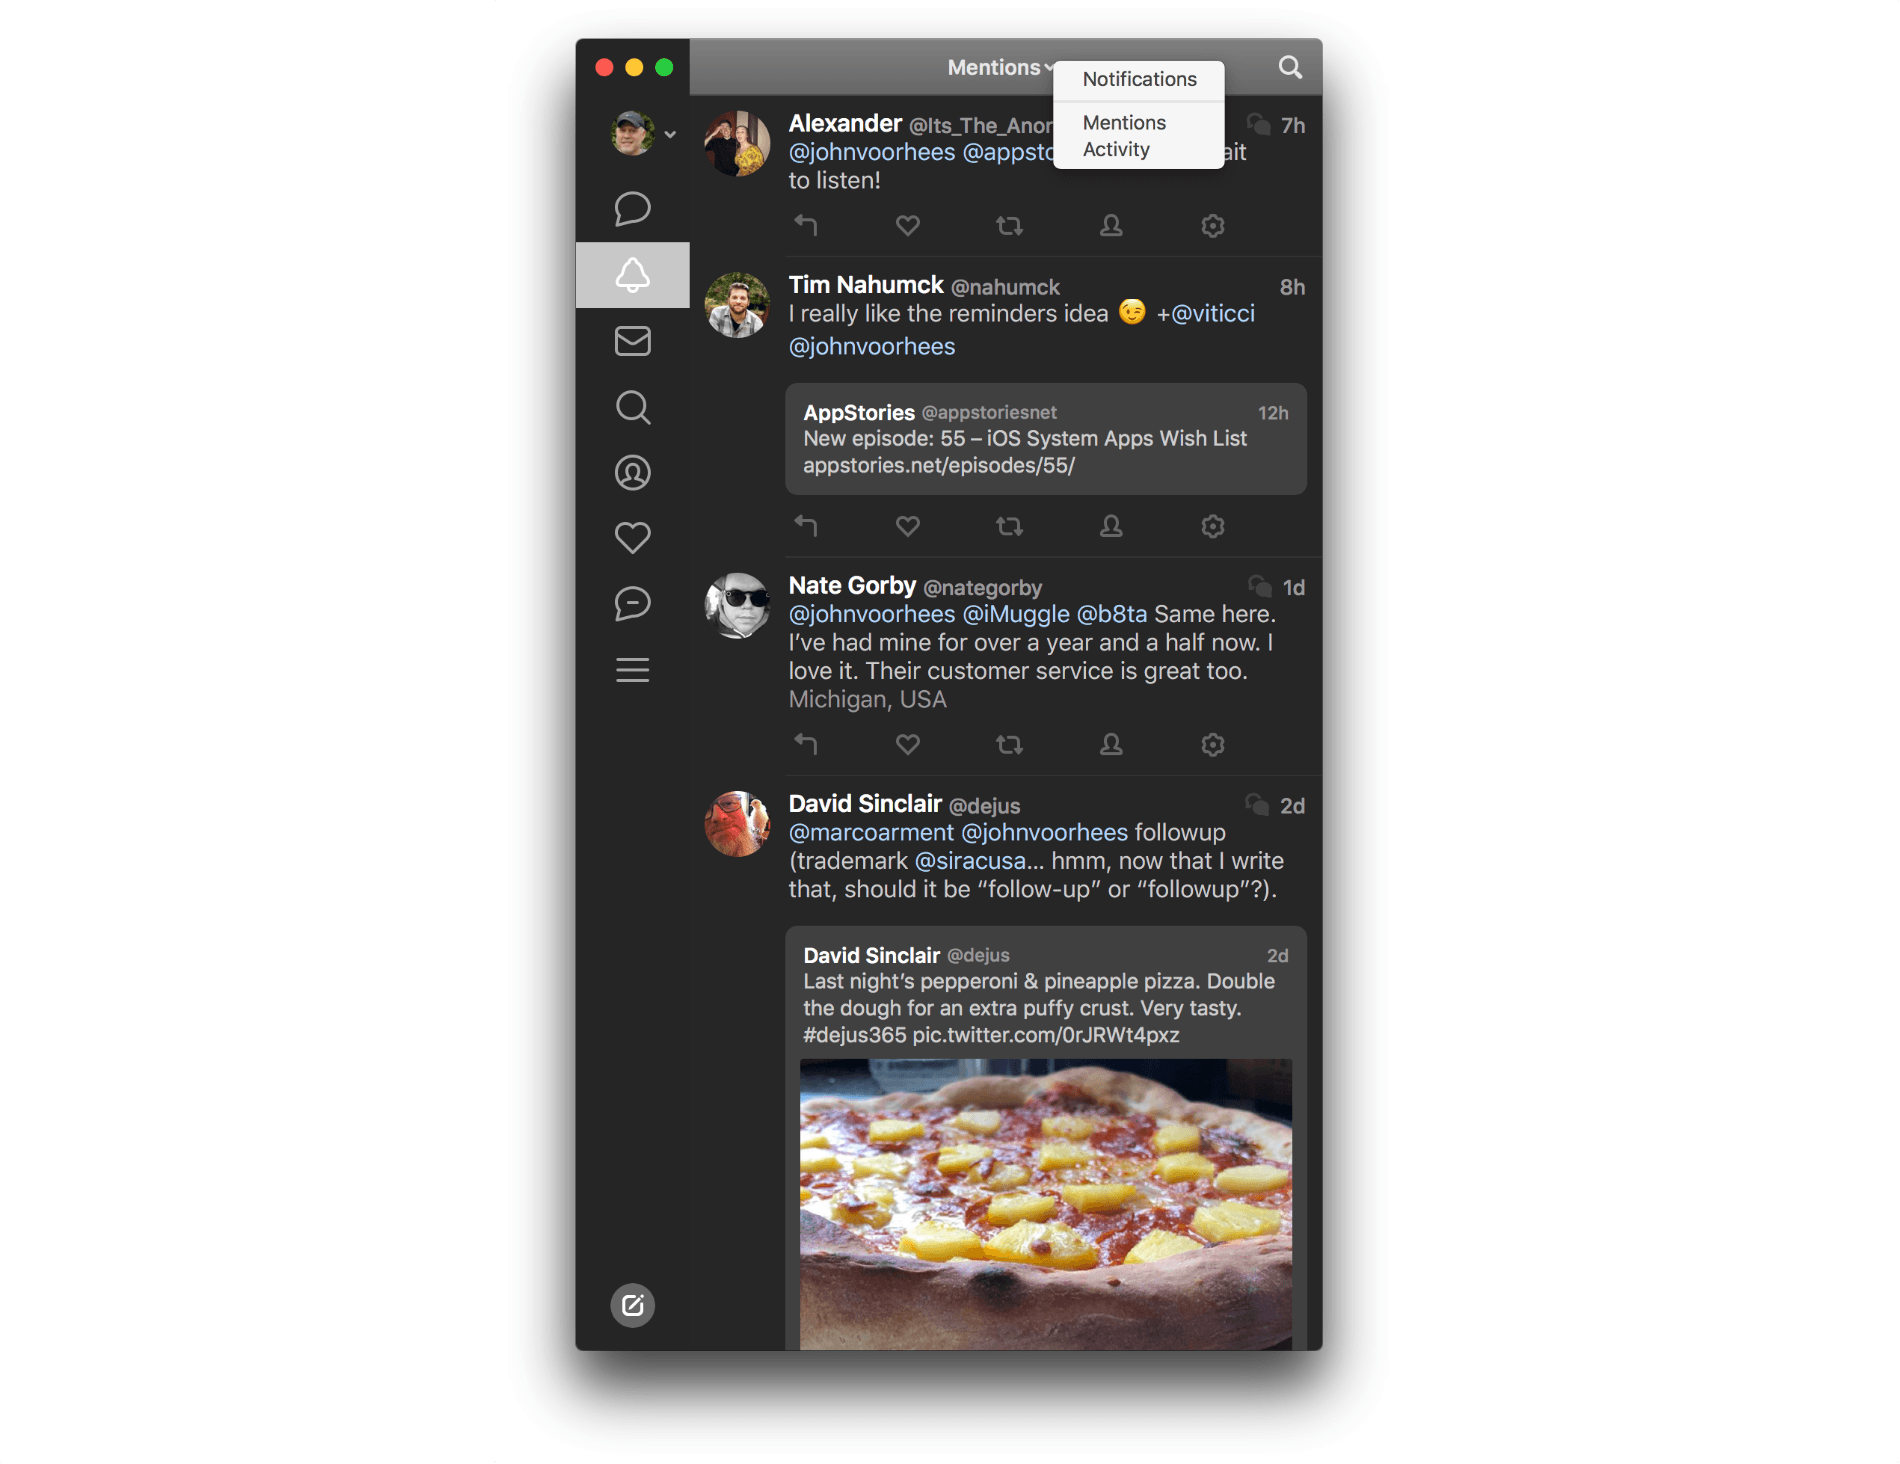 Tweetbot 3 adds title bar navigation within sidebar sections.